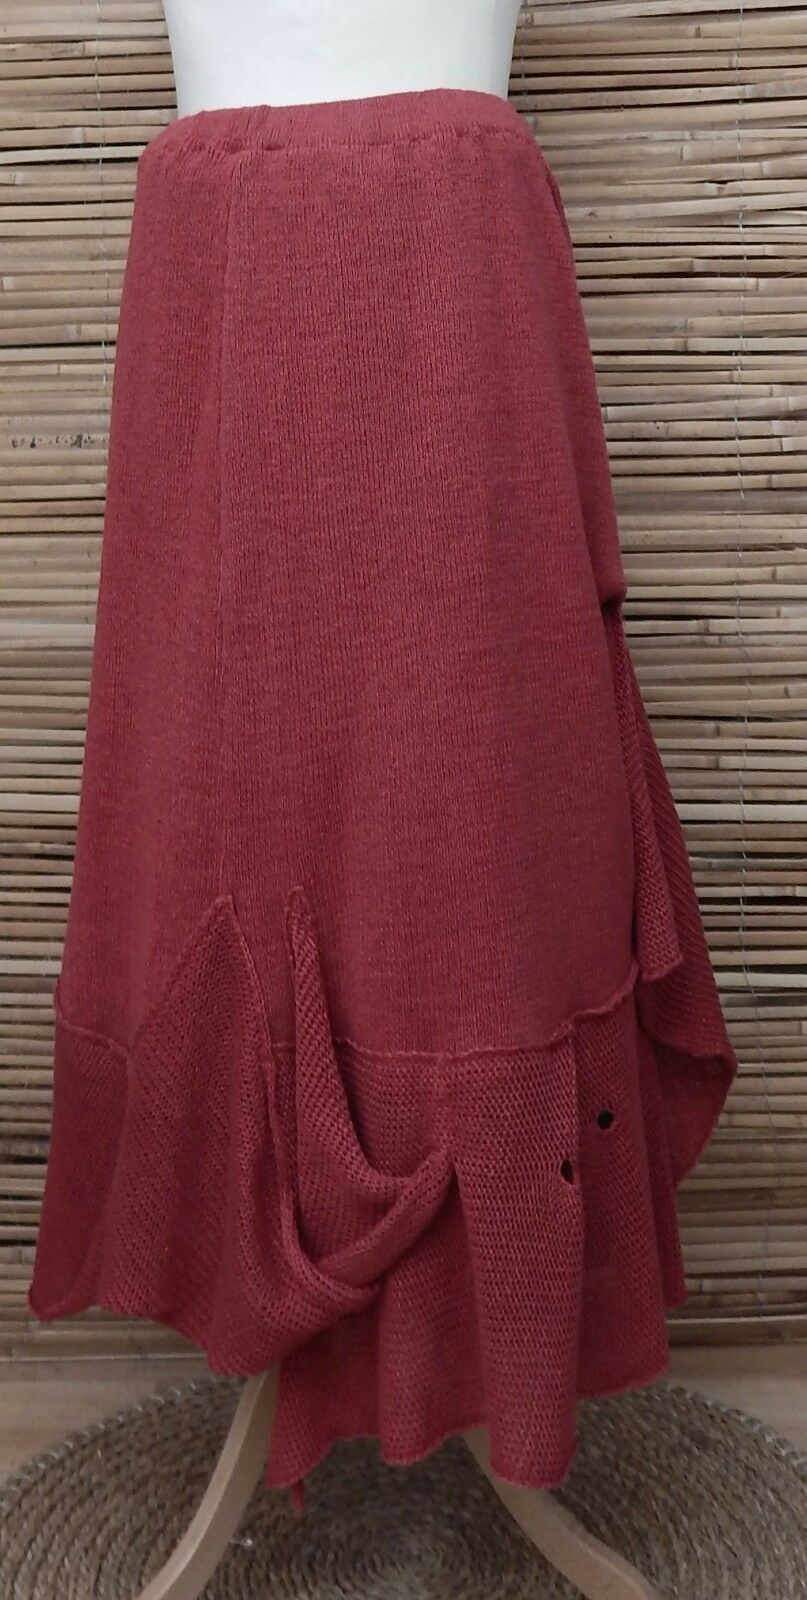 ZUZA BARTDESIGN OVERSIZED AMAZING HAND MADE LINEN BEAUTIFUL SKIRTREDXXL-XXXL